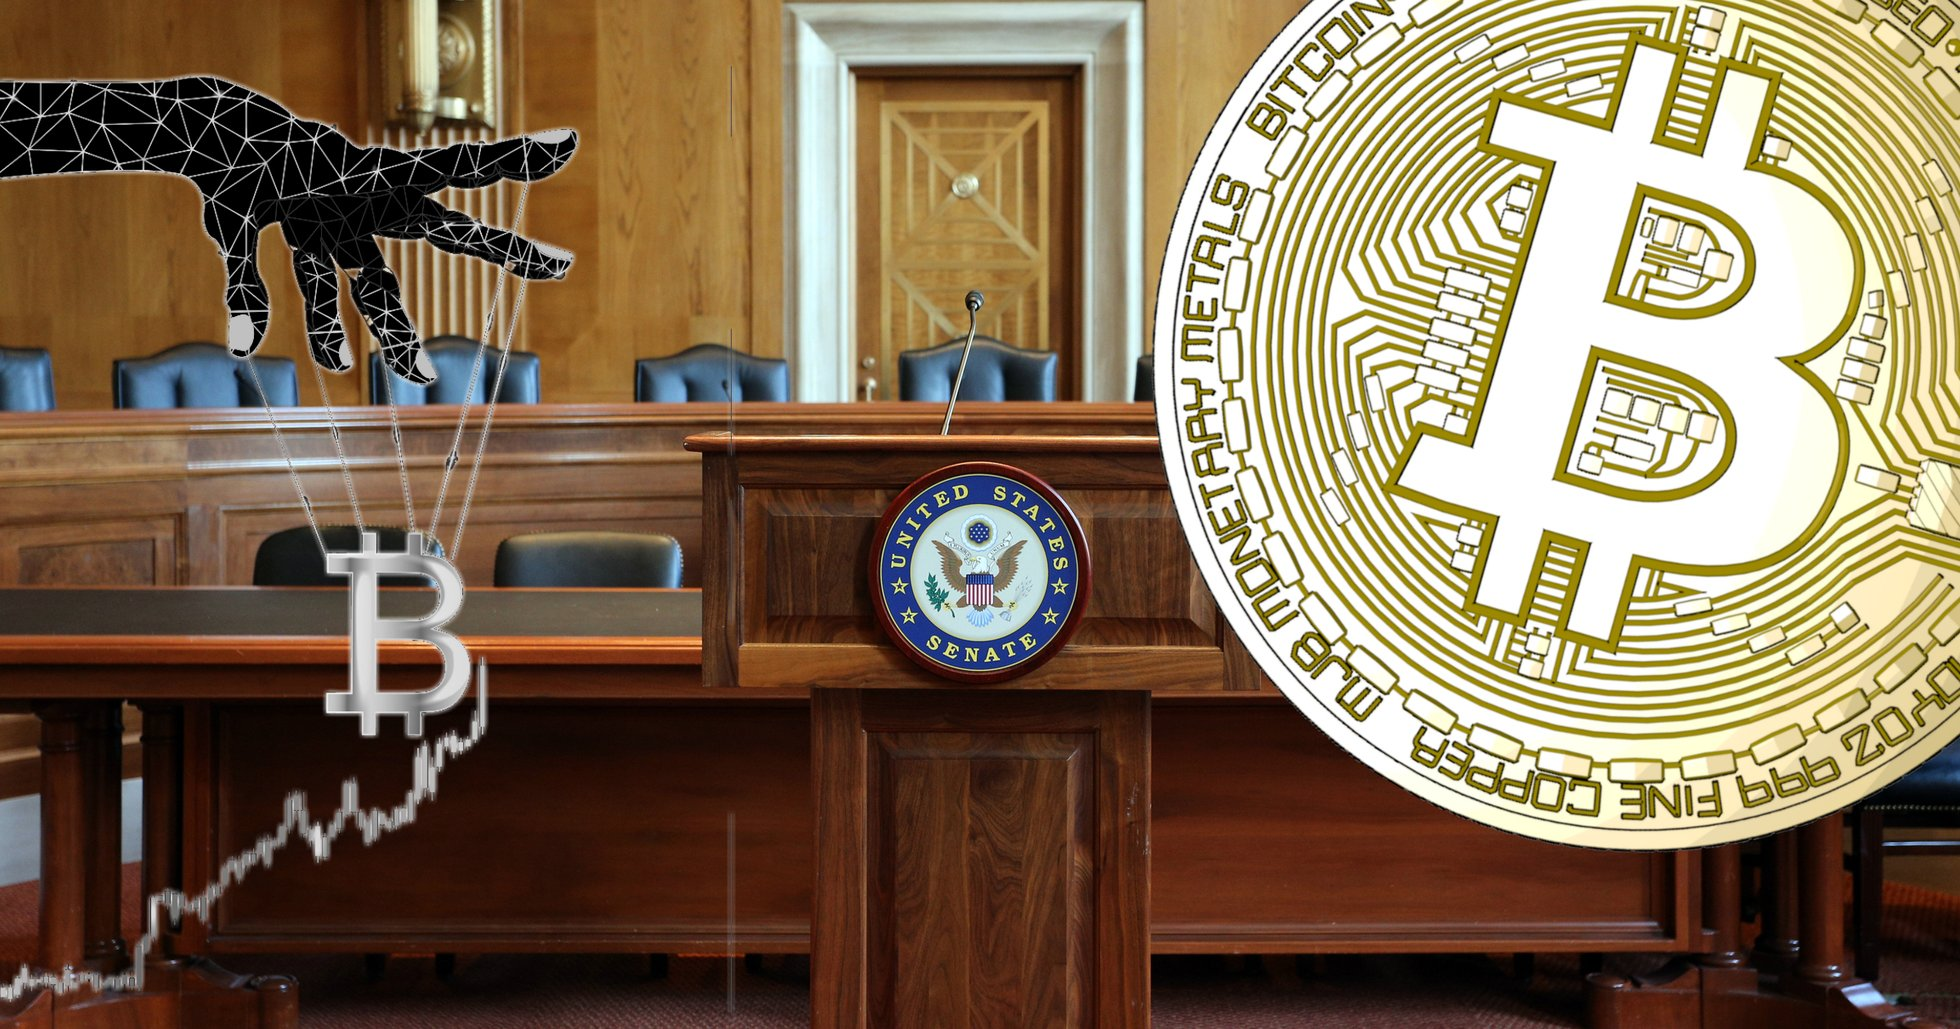 Economics professor to U.S. Senate: Cryptocurrencies are the mother of all scams.